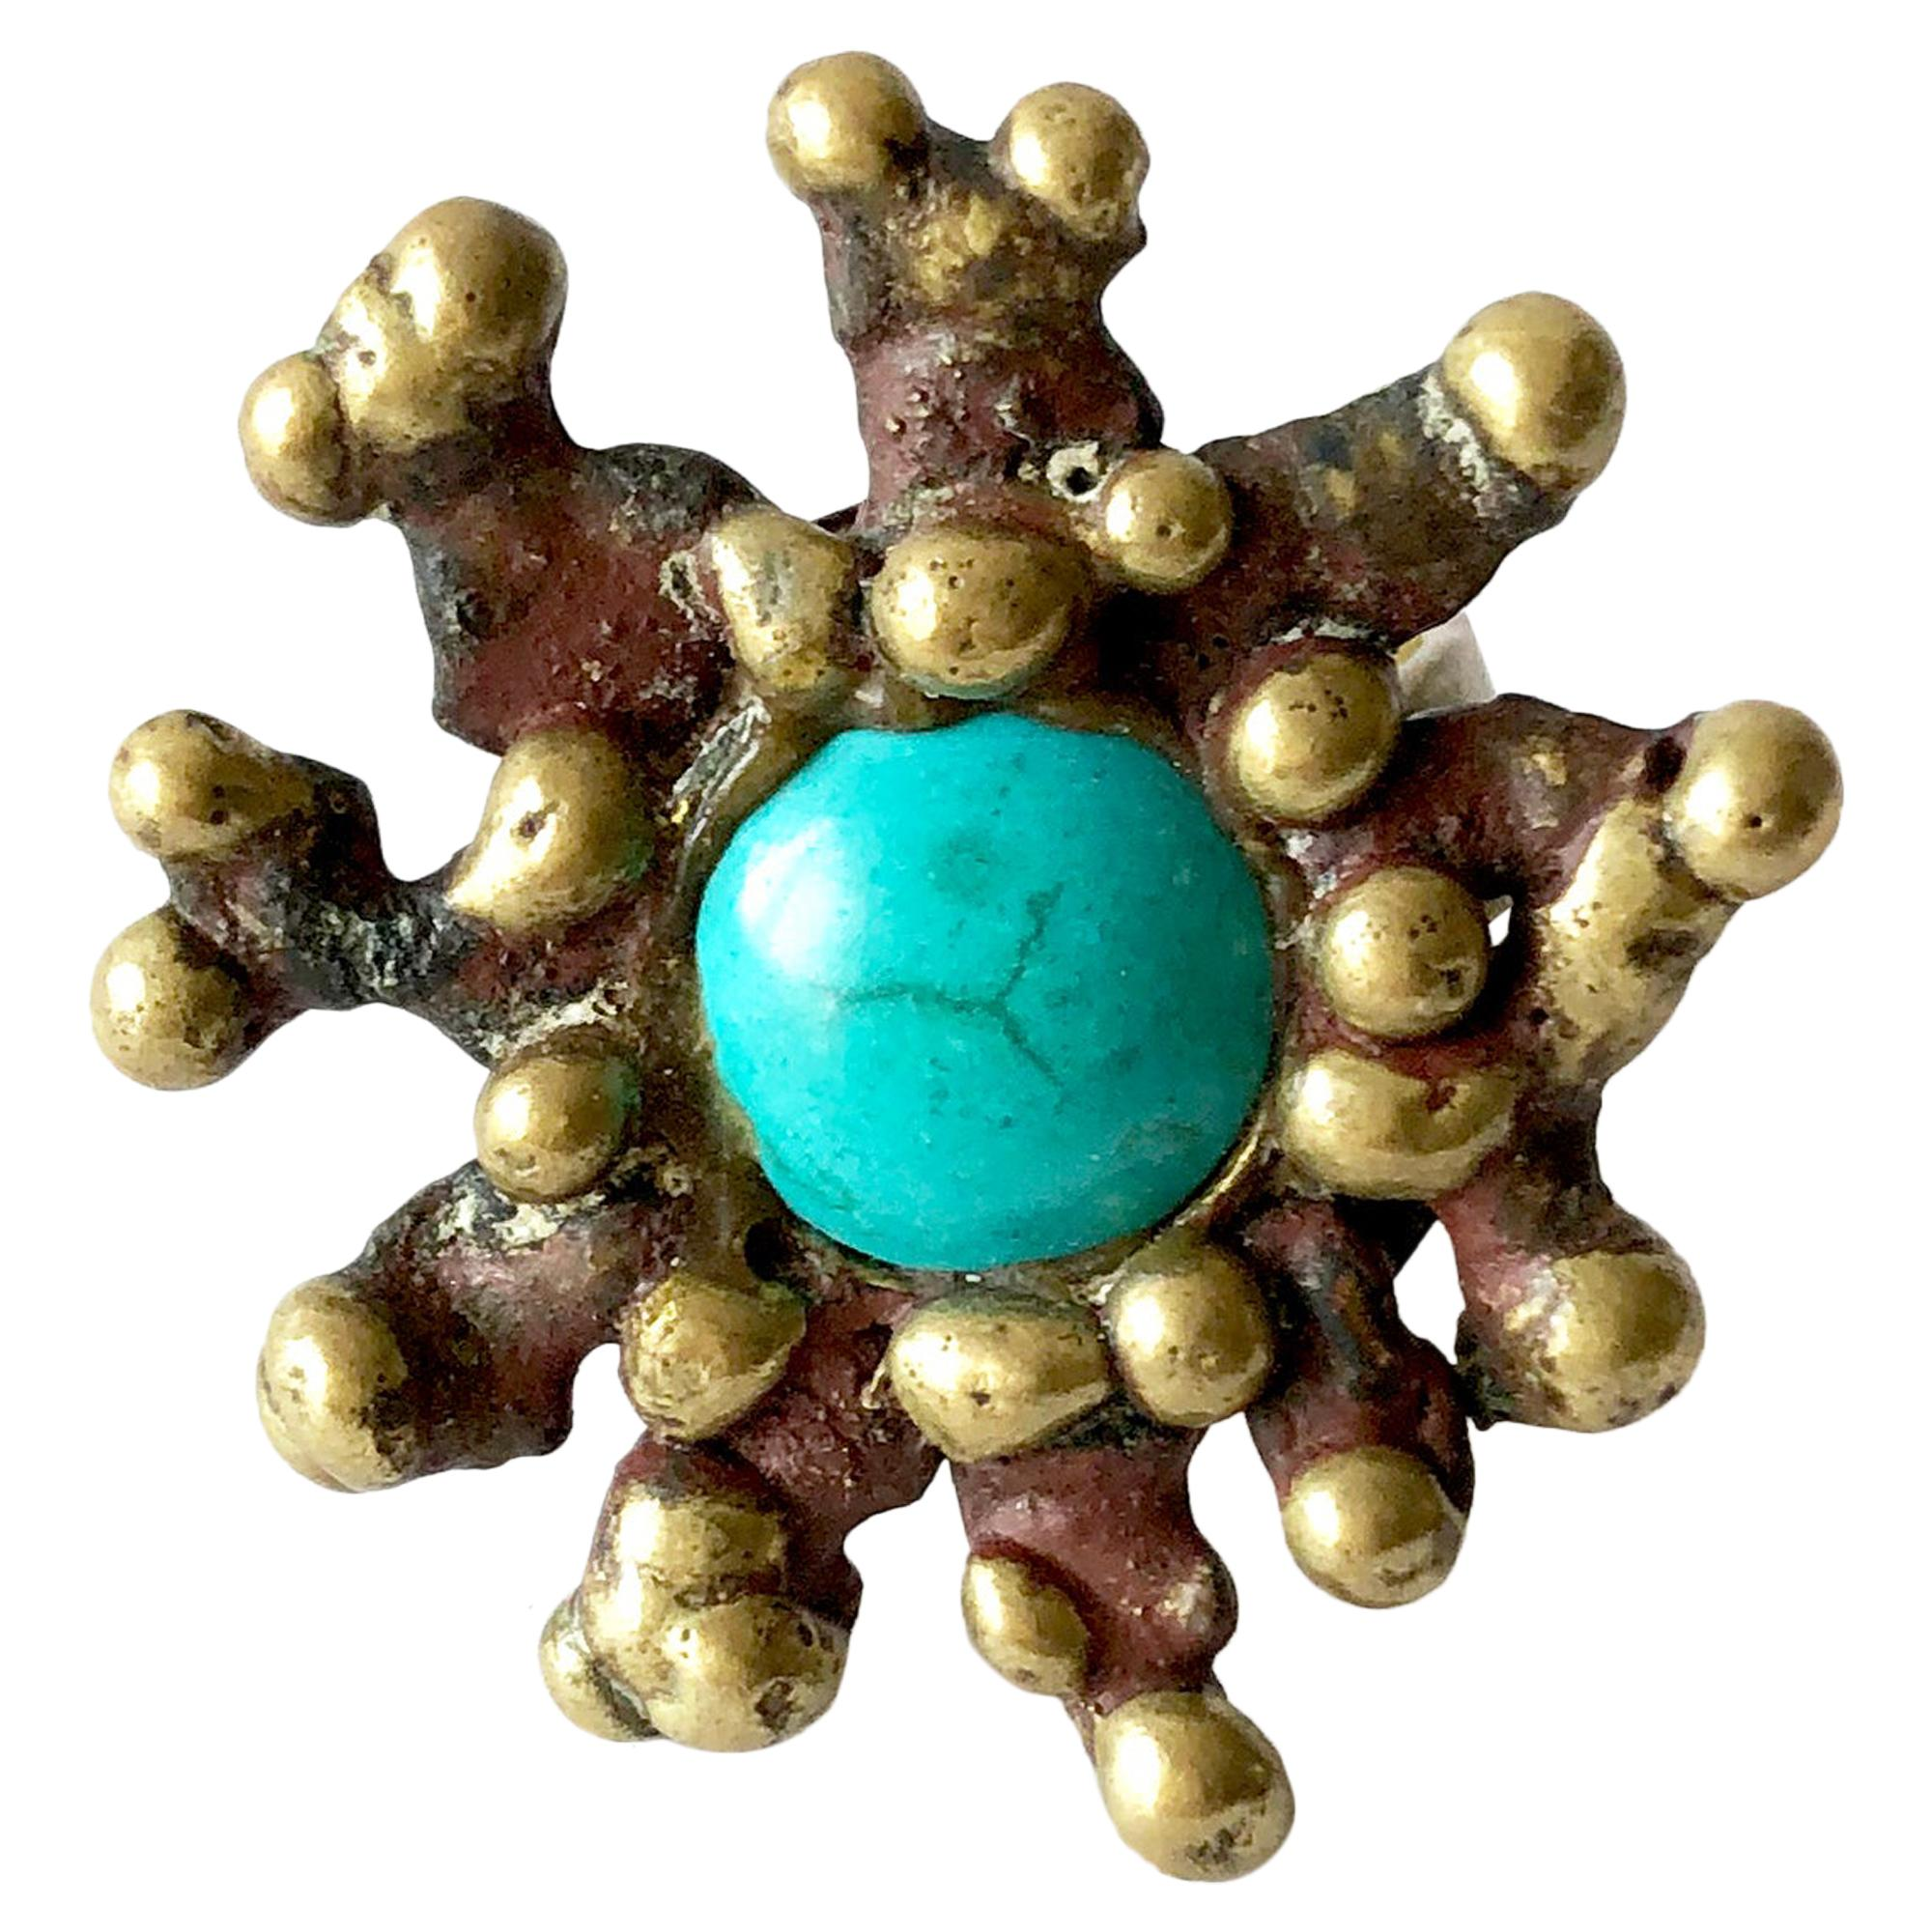 Pal Kepenyes Bronze Turquoise Mexican Modernist Ring